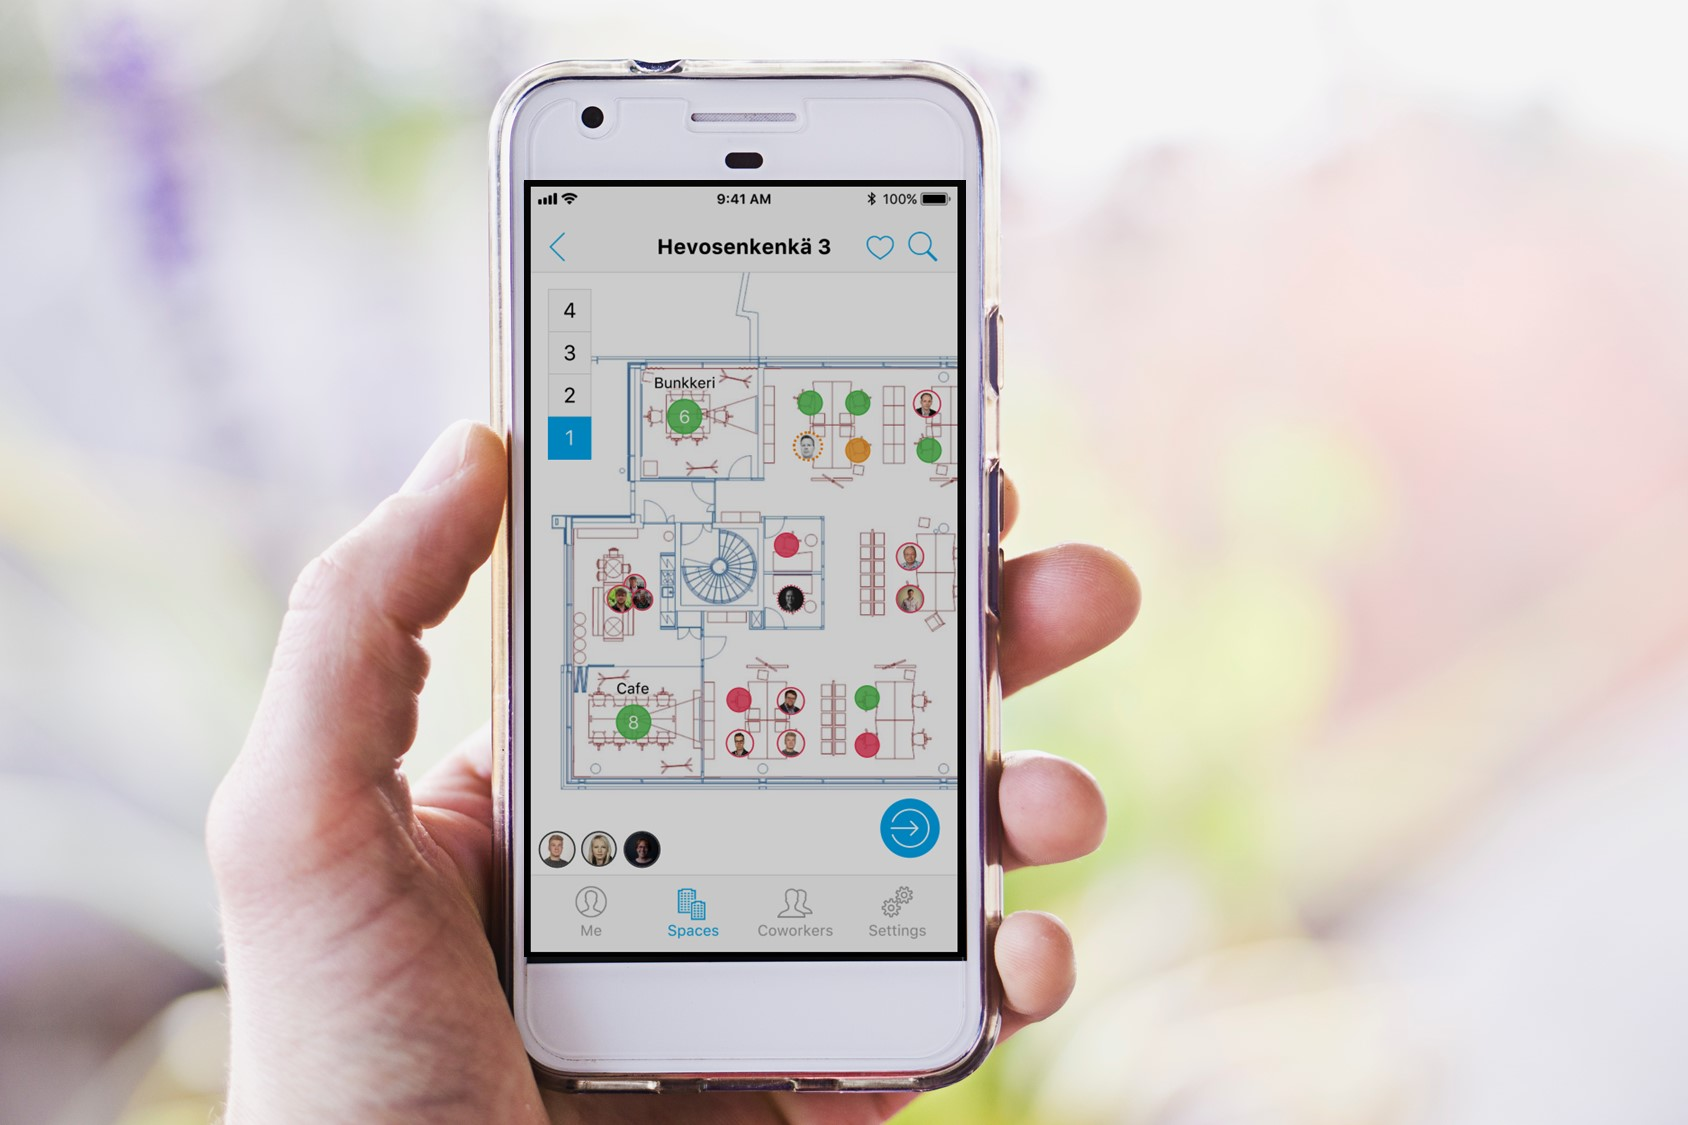 The floor plan based interface is easy and intuitive to use.